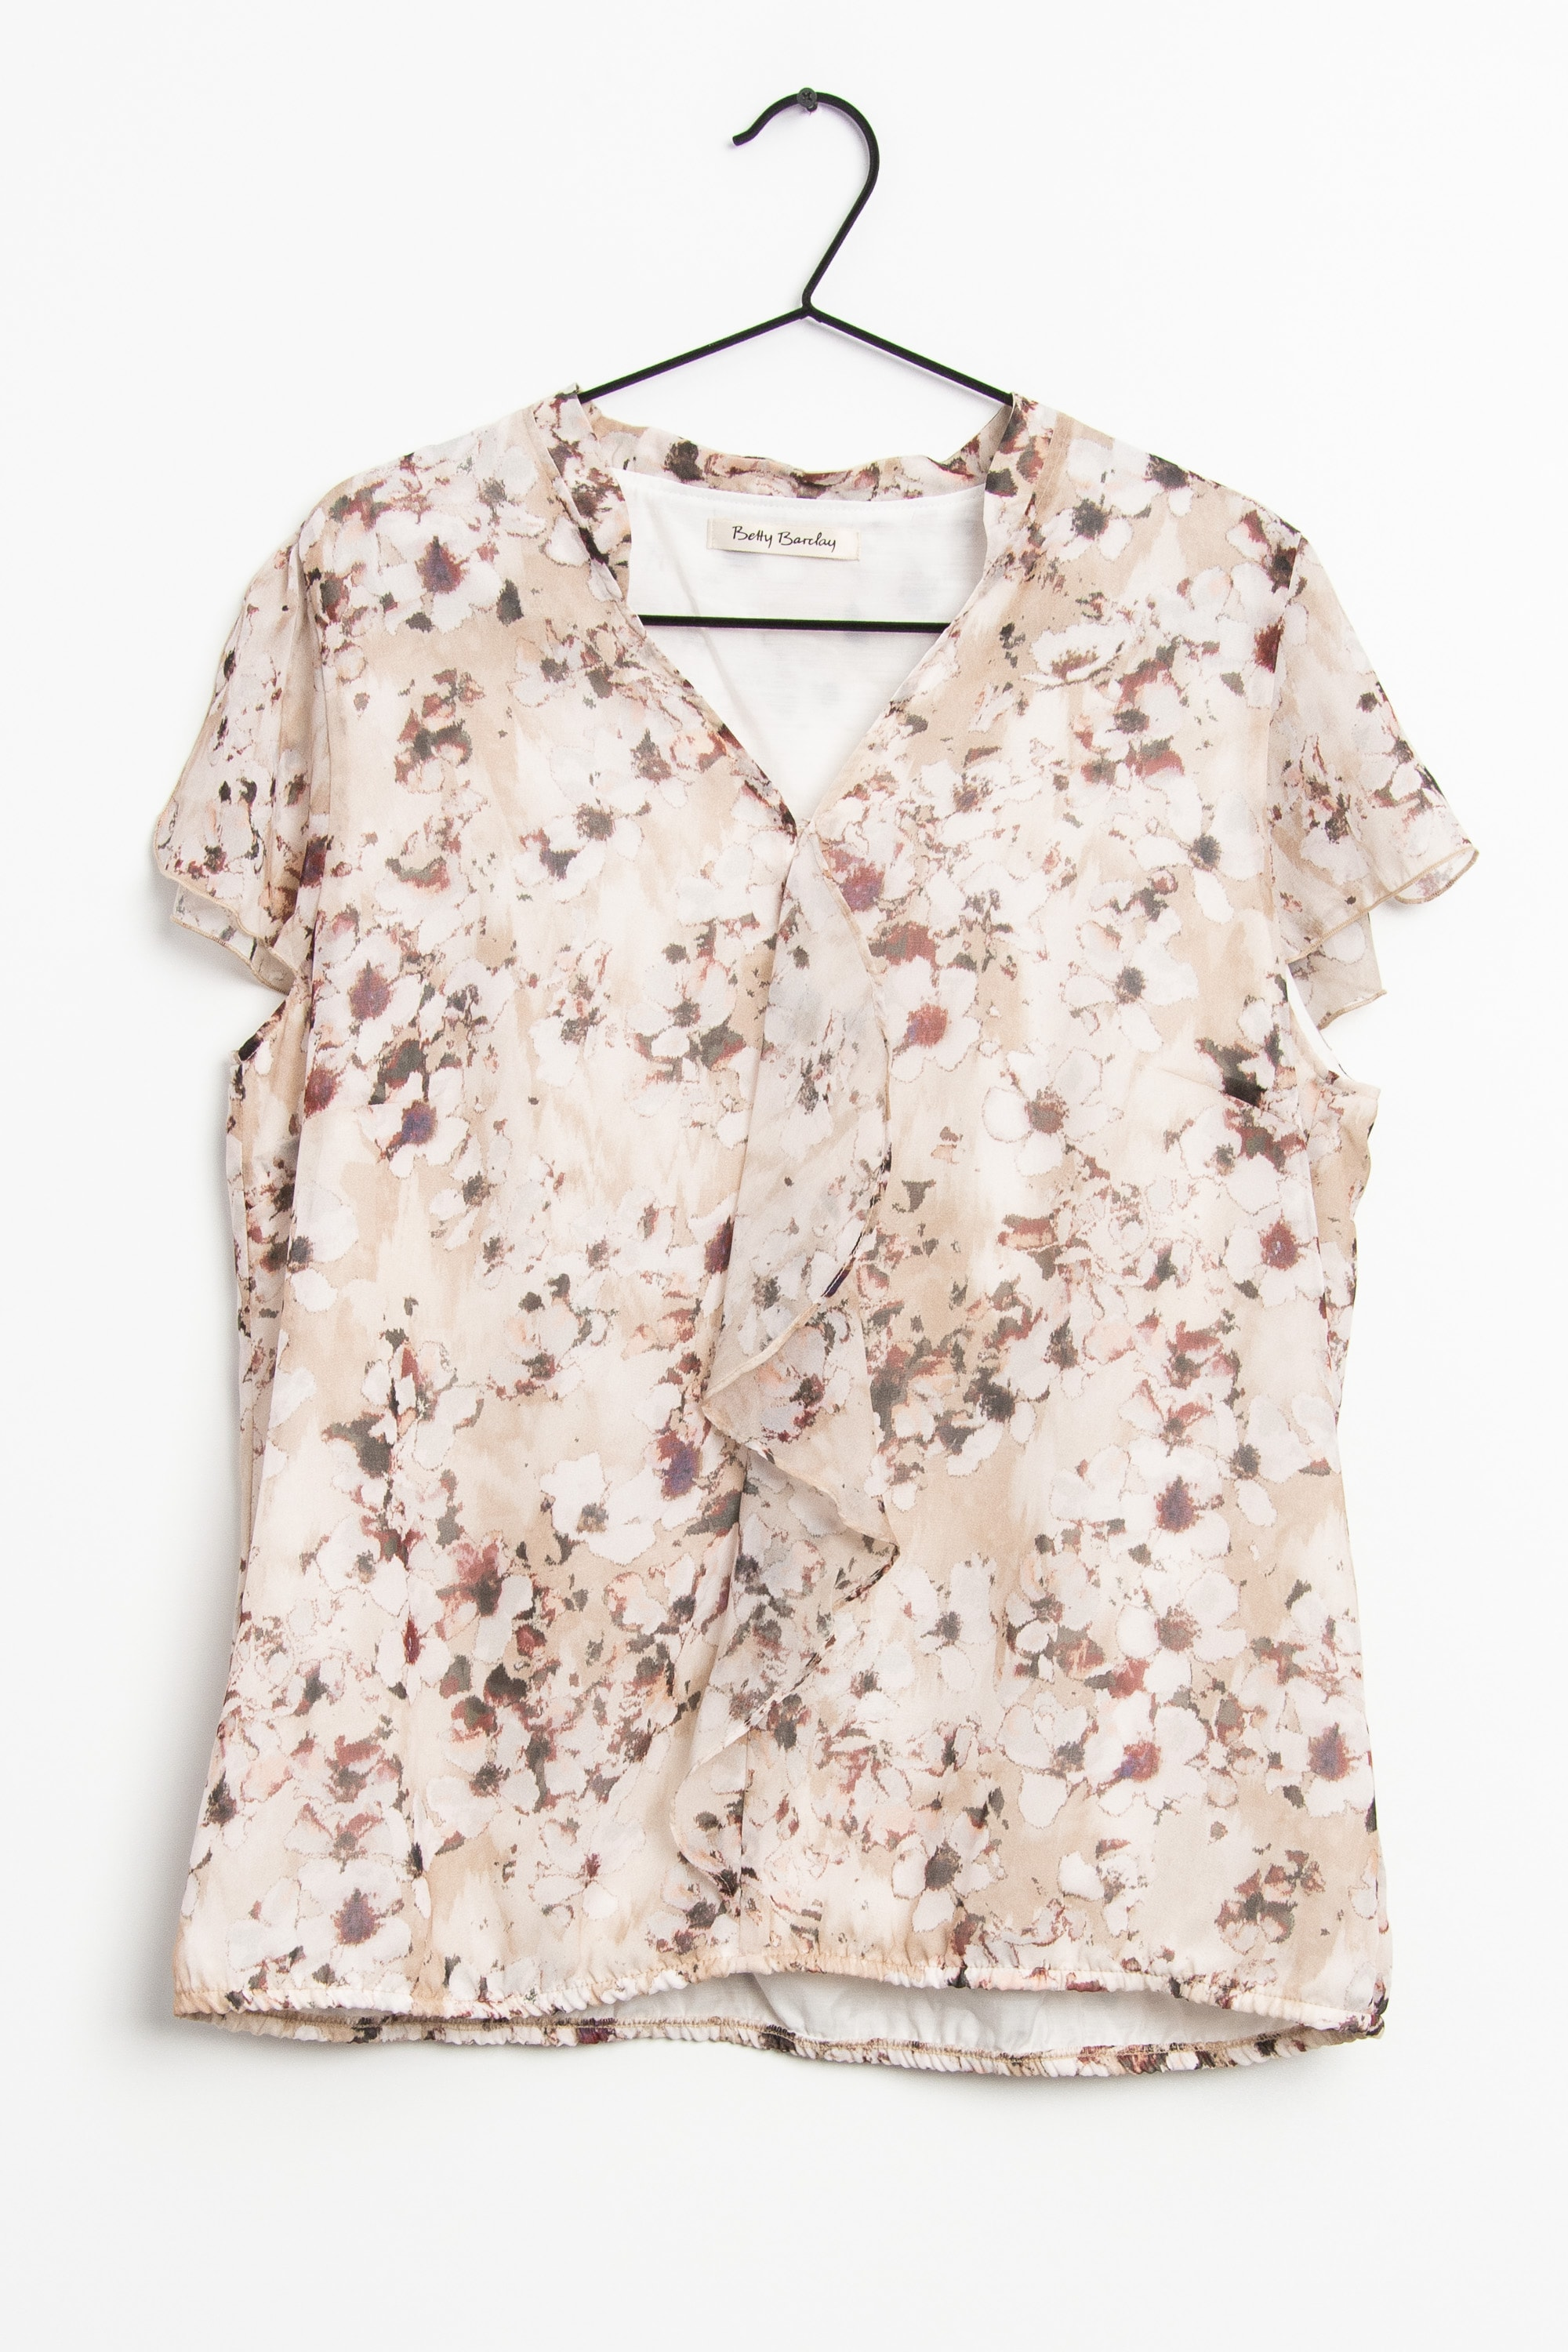 Betty Barclay Bluse Mehrfarbig Gr.L